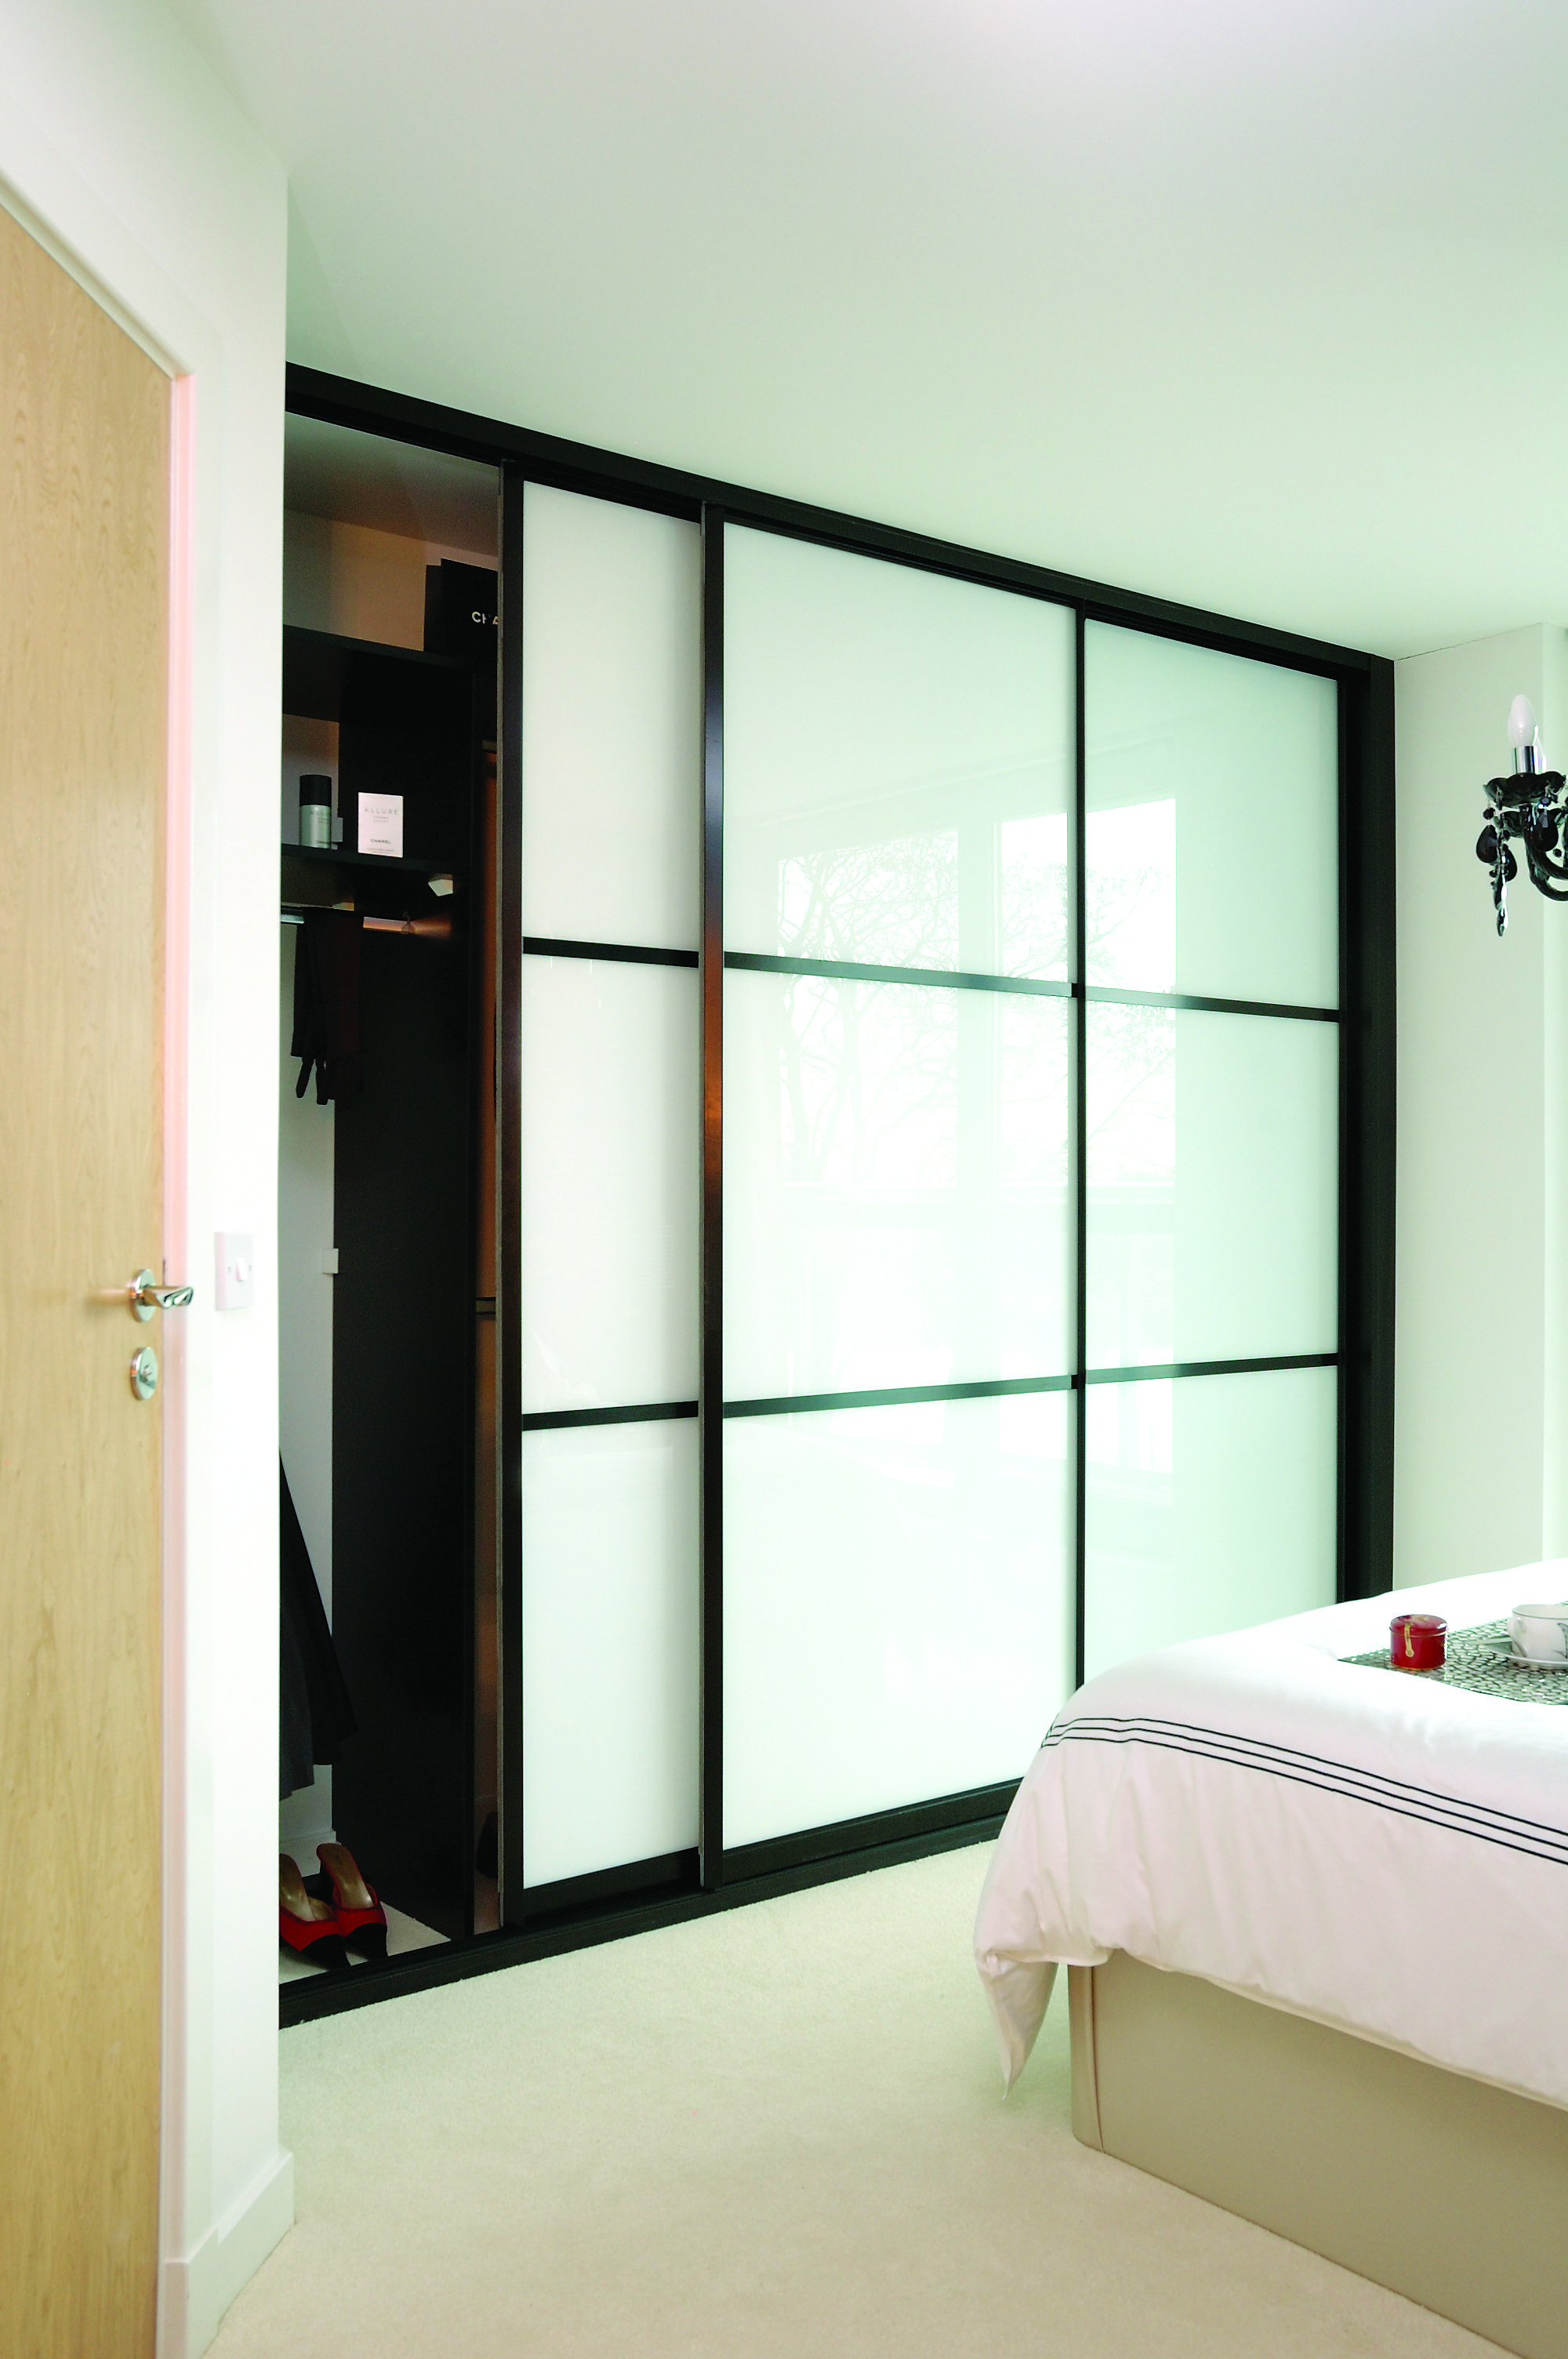 Bedroom Closet Doors Kensington Range Sliding Wardrobe Door With Japanese Style Panels And